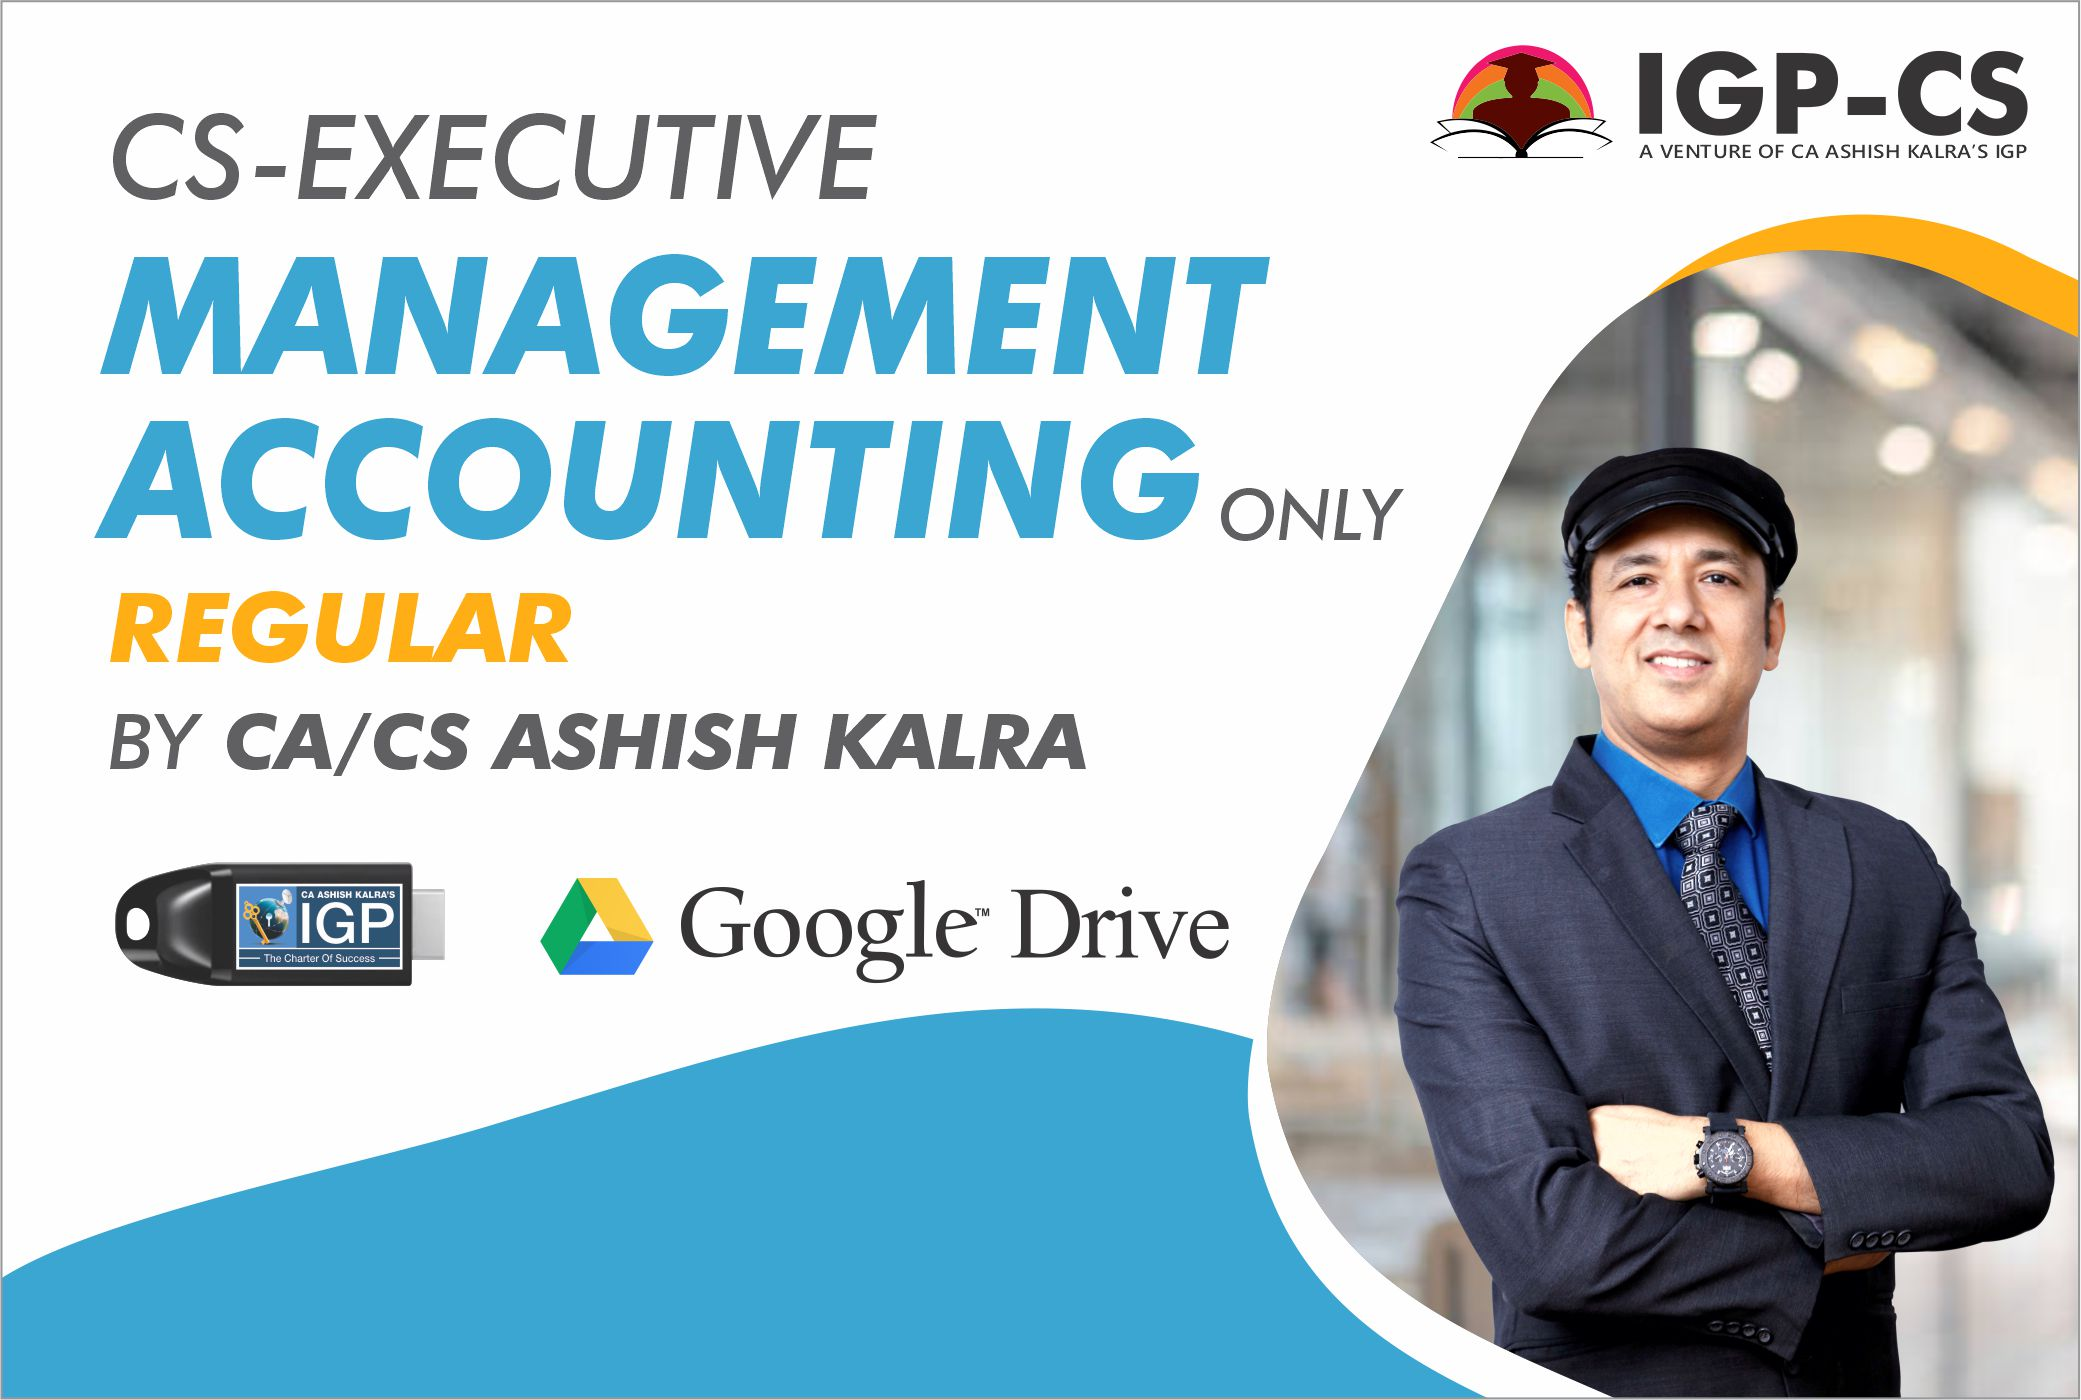 CS -Executive- Management Accounting only